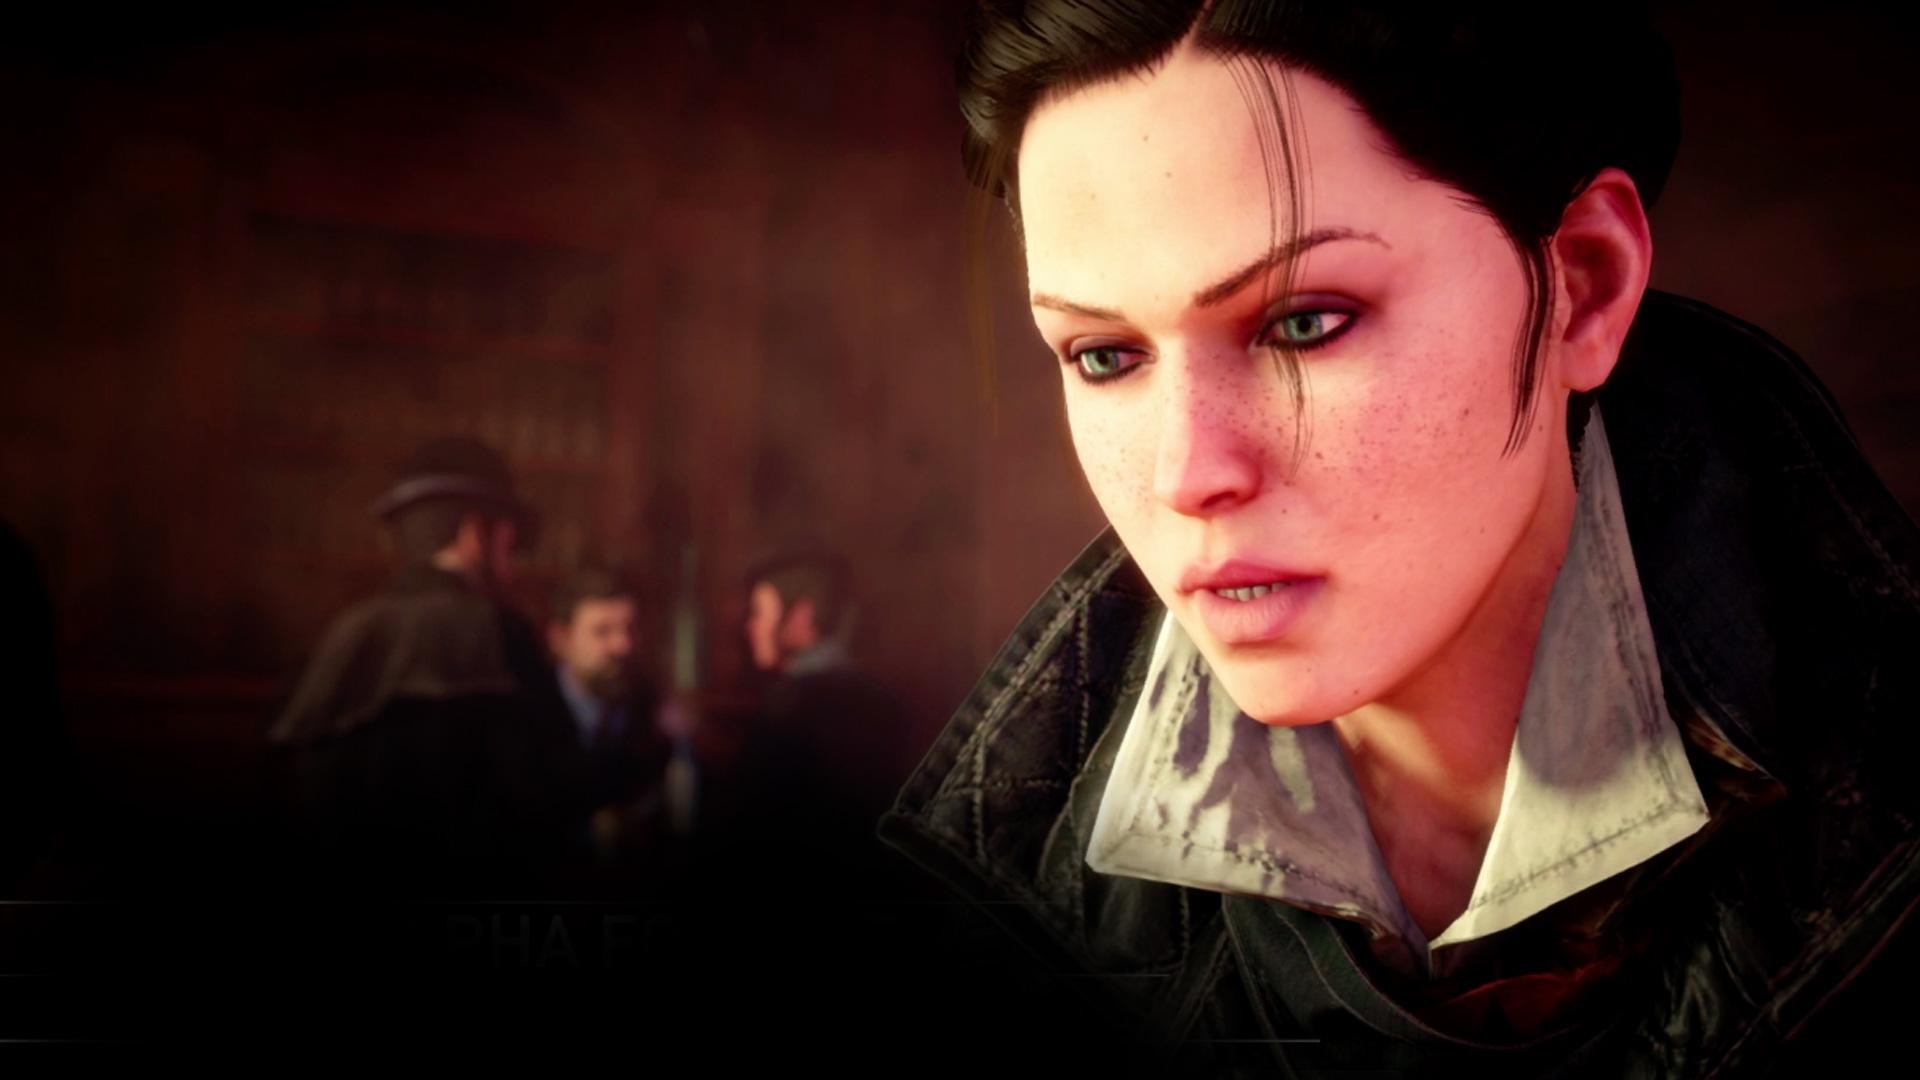 Assassin's creed syndicate evie nude mod cartoon images